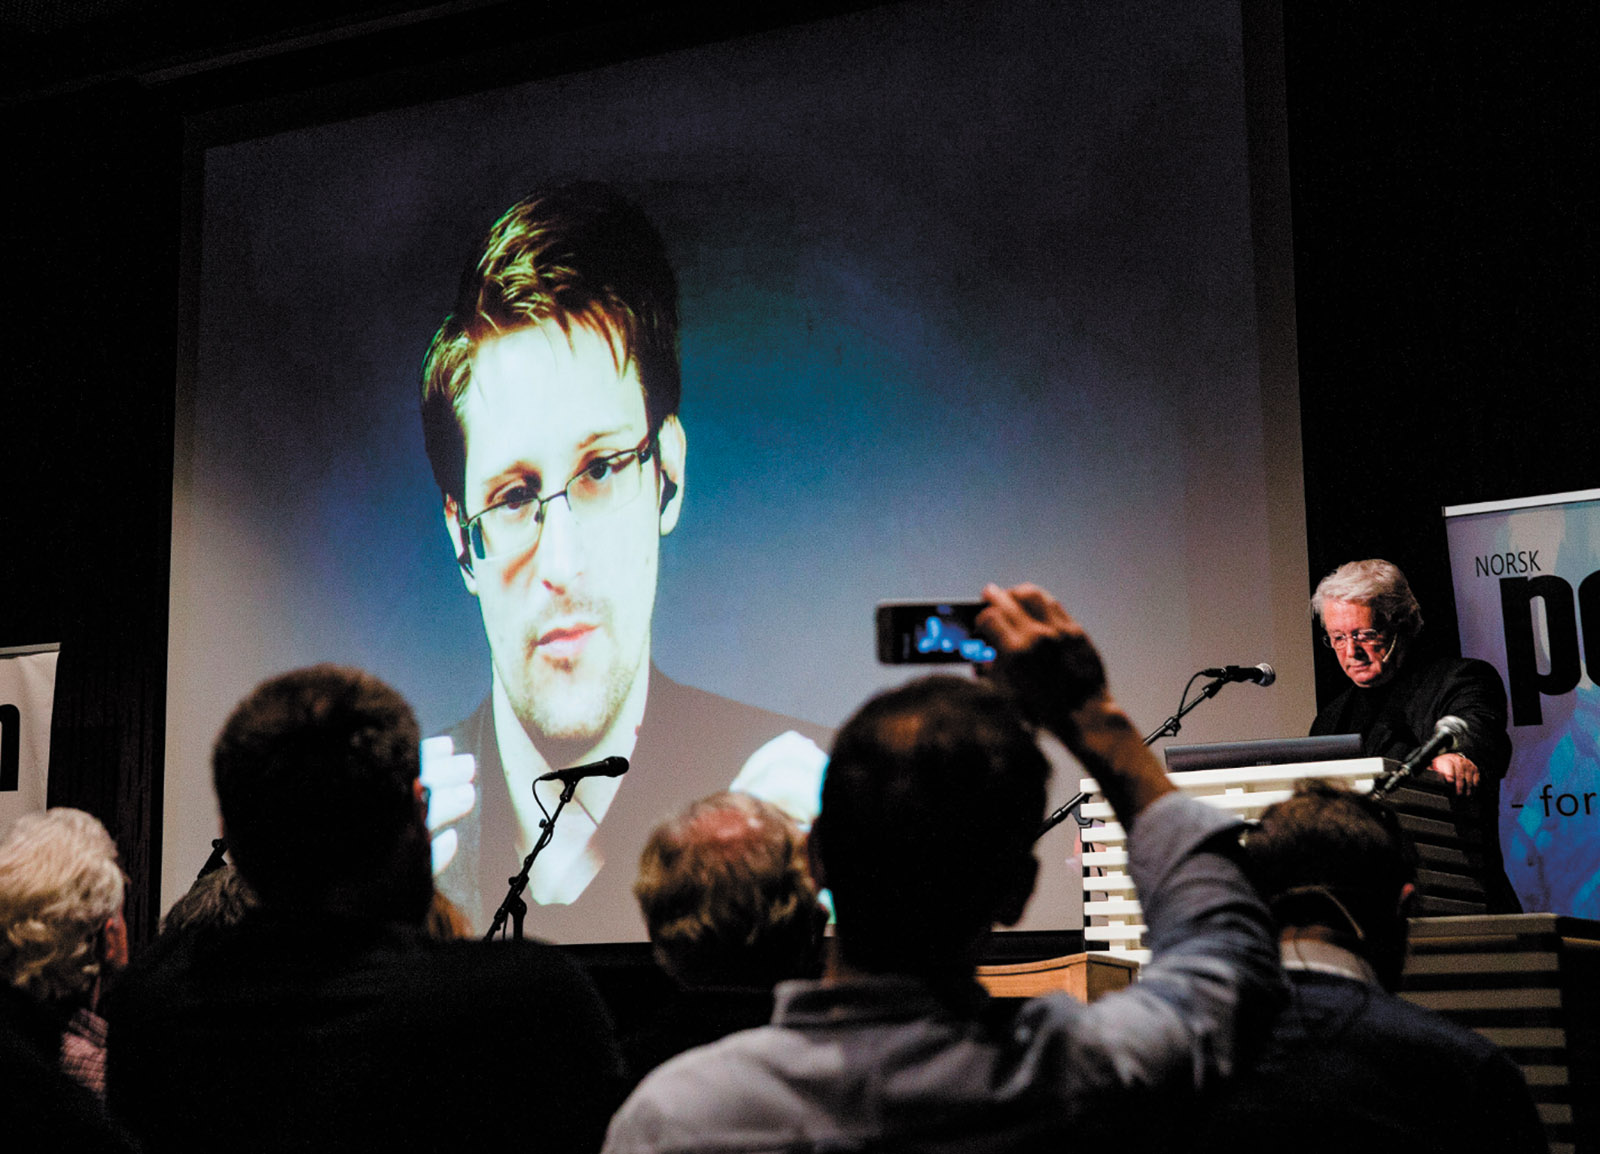 Edward Snowden seen live from Moscow at the Norwegian PEN event 'Waiting for Snowden,' where he was awarded the Ossietzky Prize for 'outstanding contributions to freedom of expression,' Oslo, November 2016